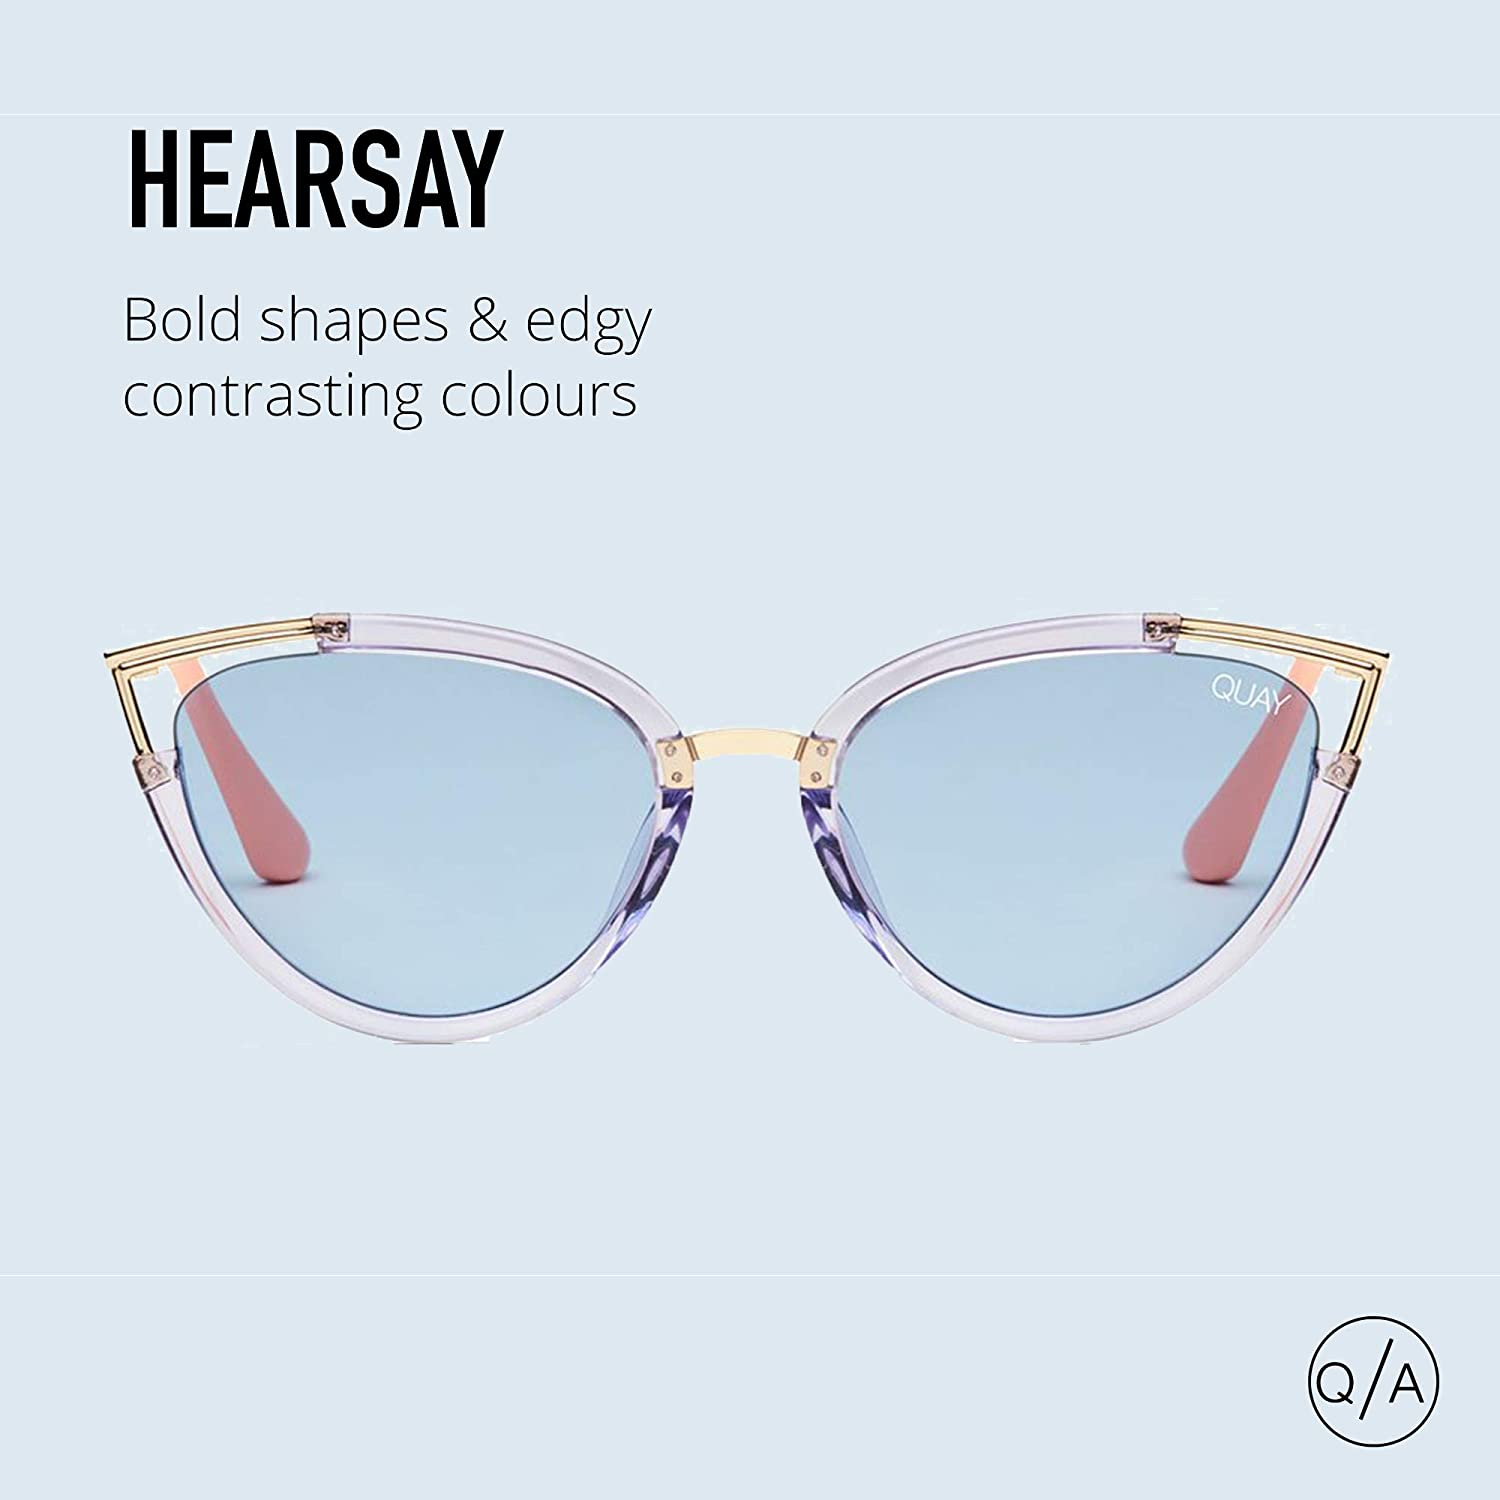 088490462e Amazon.com  Quay Australia HEARSAY Women s Sunglasses Cateye with Metal  Accent - Blue Blue  Clothing